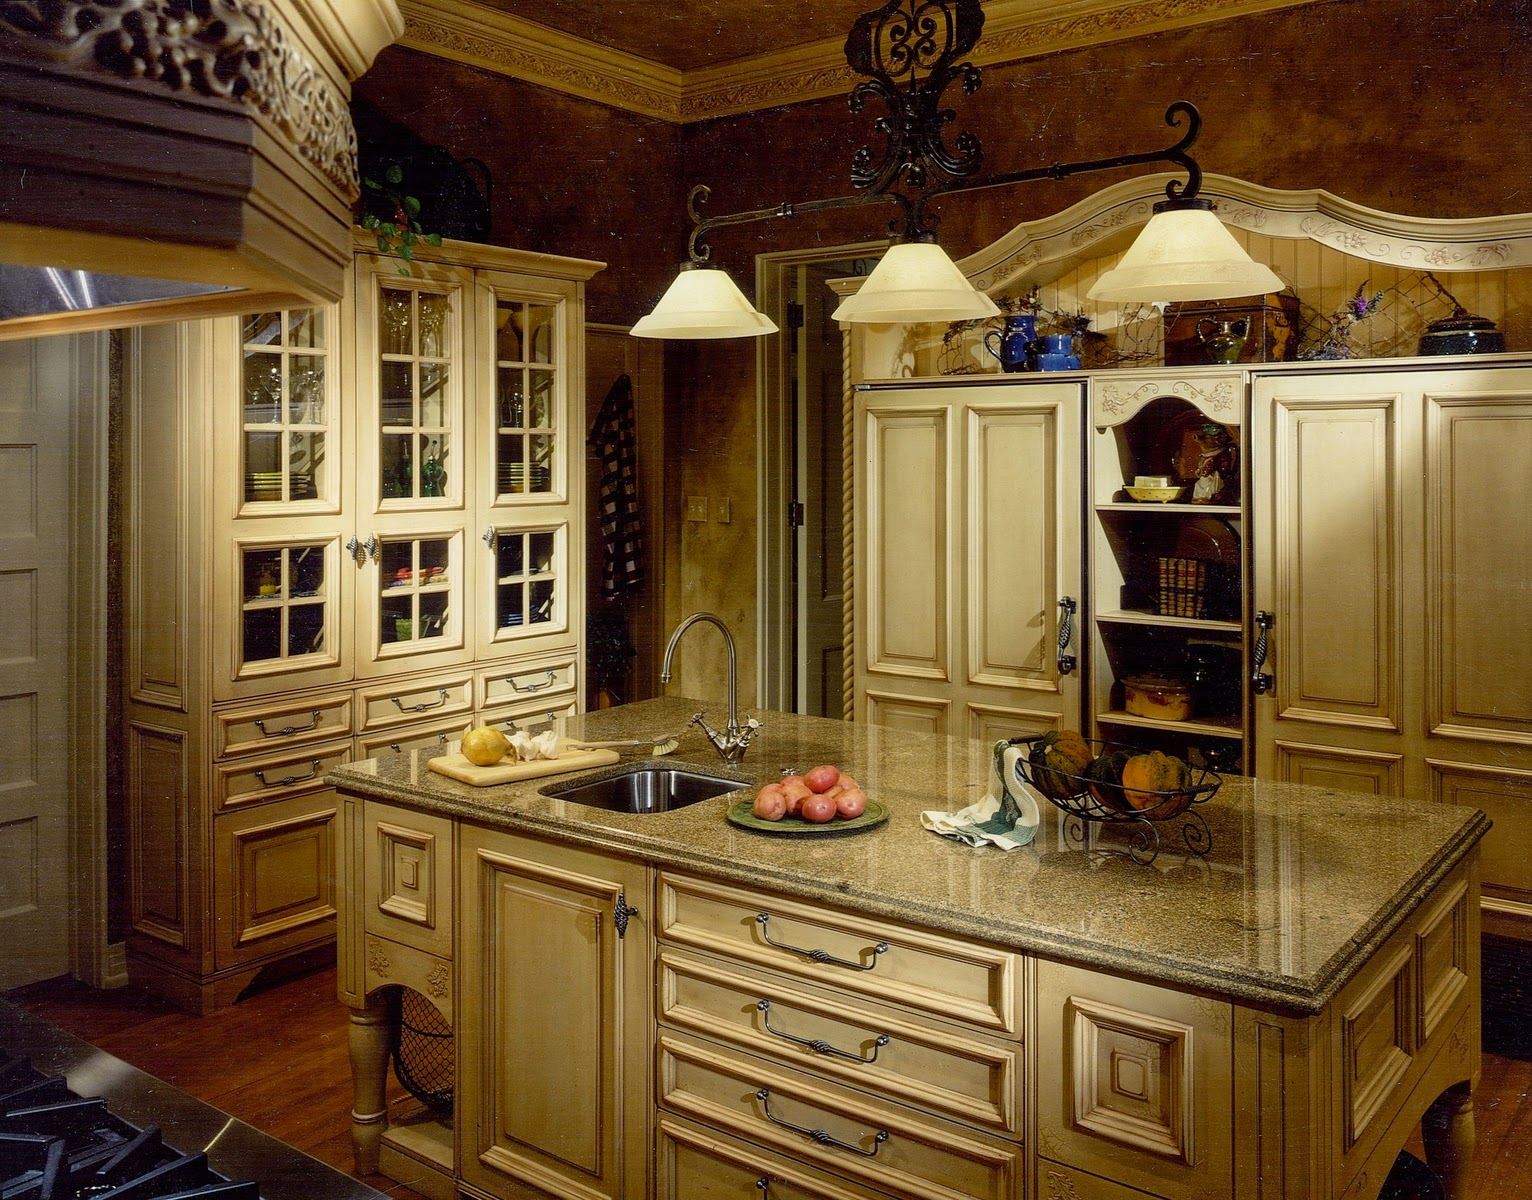 French Country Kitchen Cabinets Instant Knowledge Interiors Inside Ideas Interiors design about Everything [magnanprojects.com]